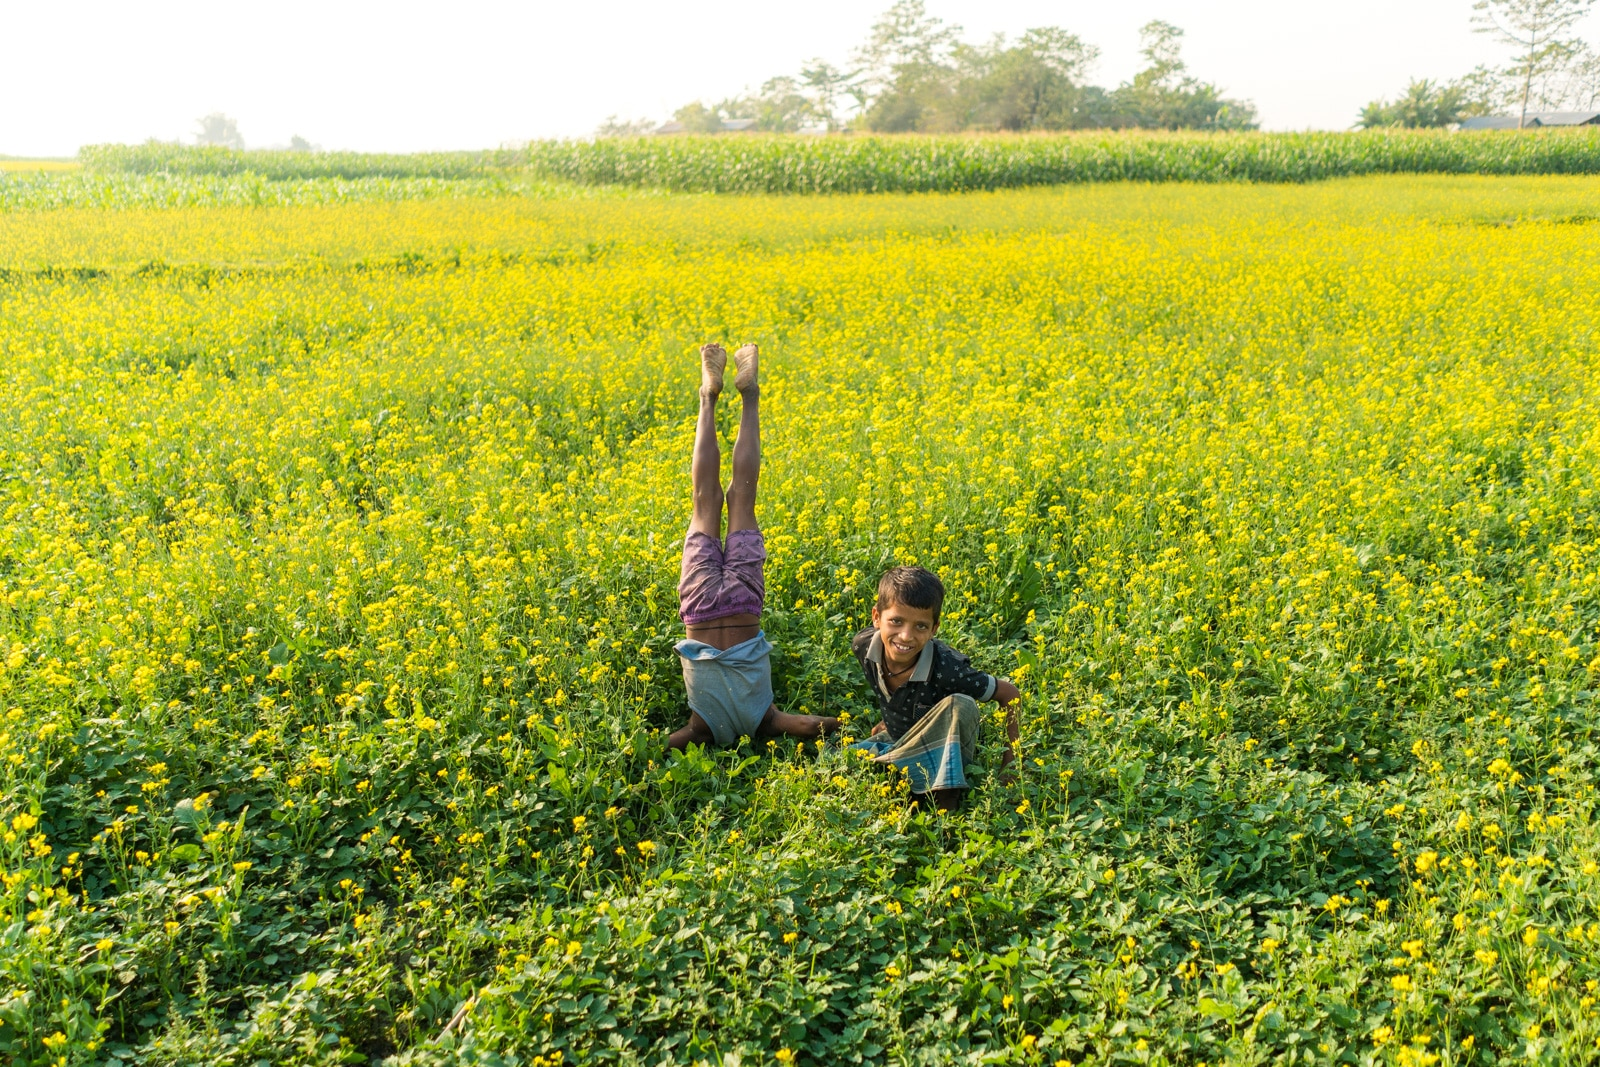 Luxury river cruise in Assam, India with Assam Bengal Navigation - Village kids in a mustard field in the Bangladeshi village of Khirakanta - Lost With Purpose travel blog